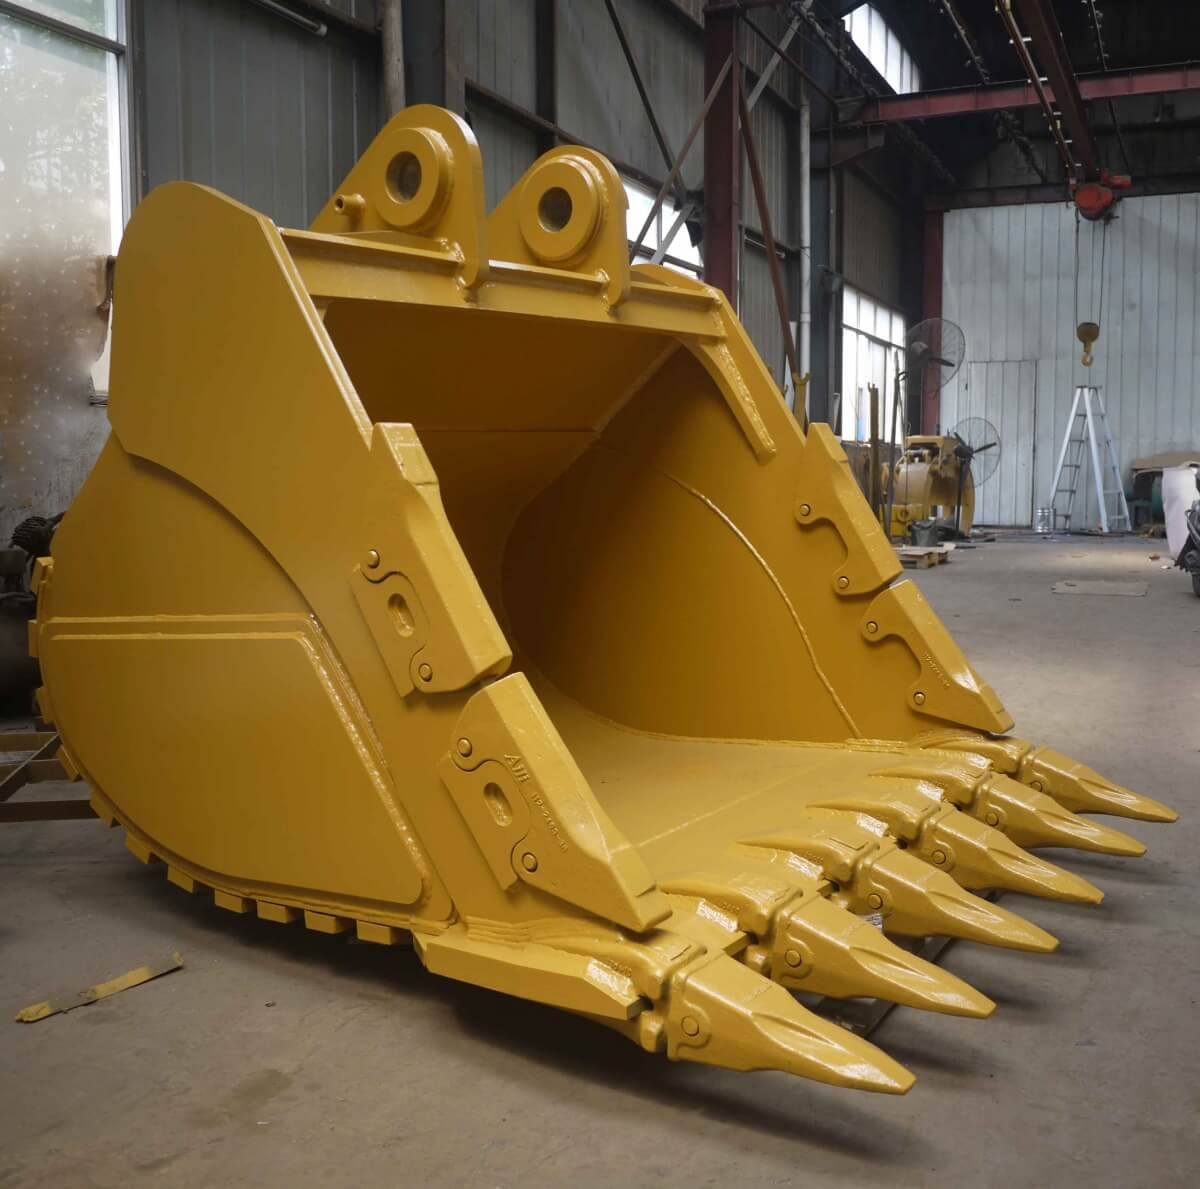 Excavator Bucket : Excavator bucket kardesler grab and machine